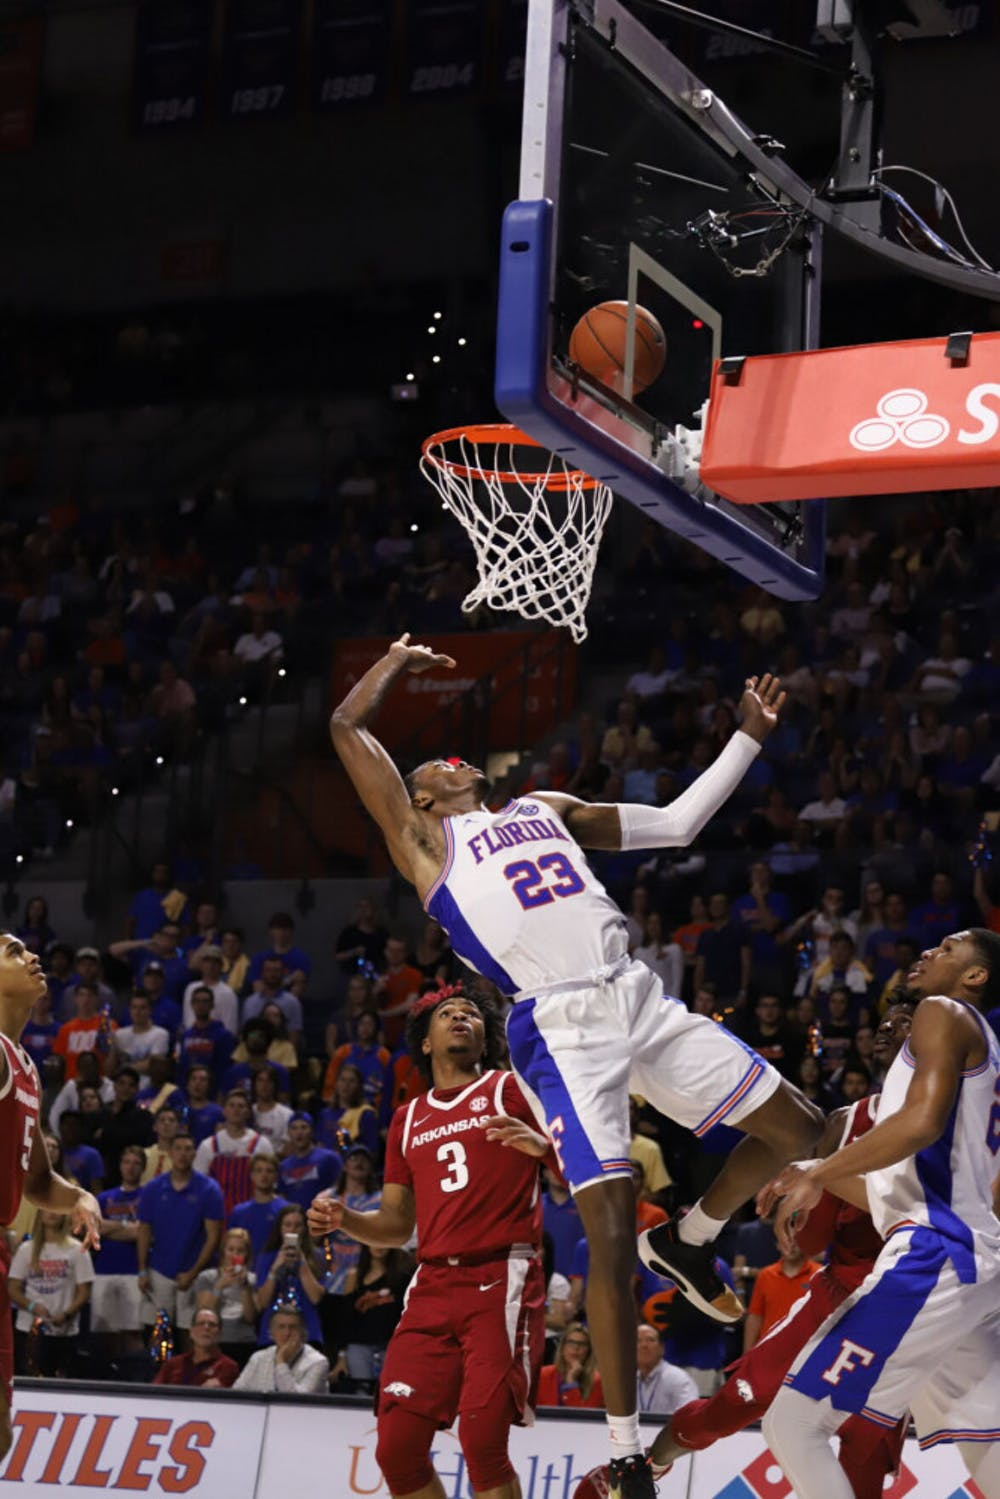 <p>Sophomore guard Scottie Lewis at last year&#x27;s game against Arkansas. Lewis scored 16 points and dished out five assists in a winning effort Wednesday.</p>